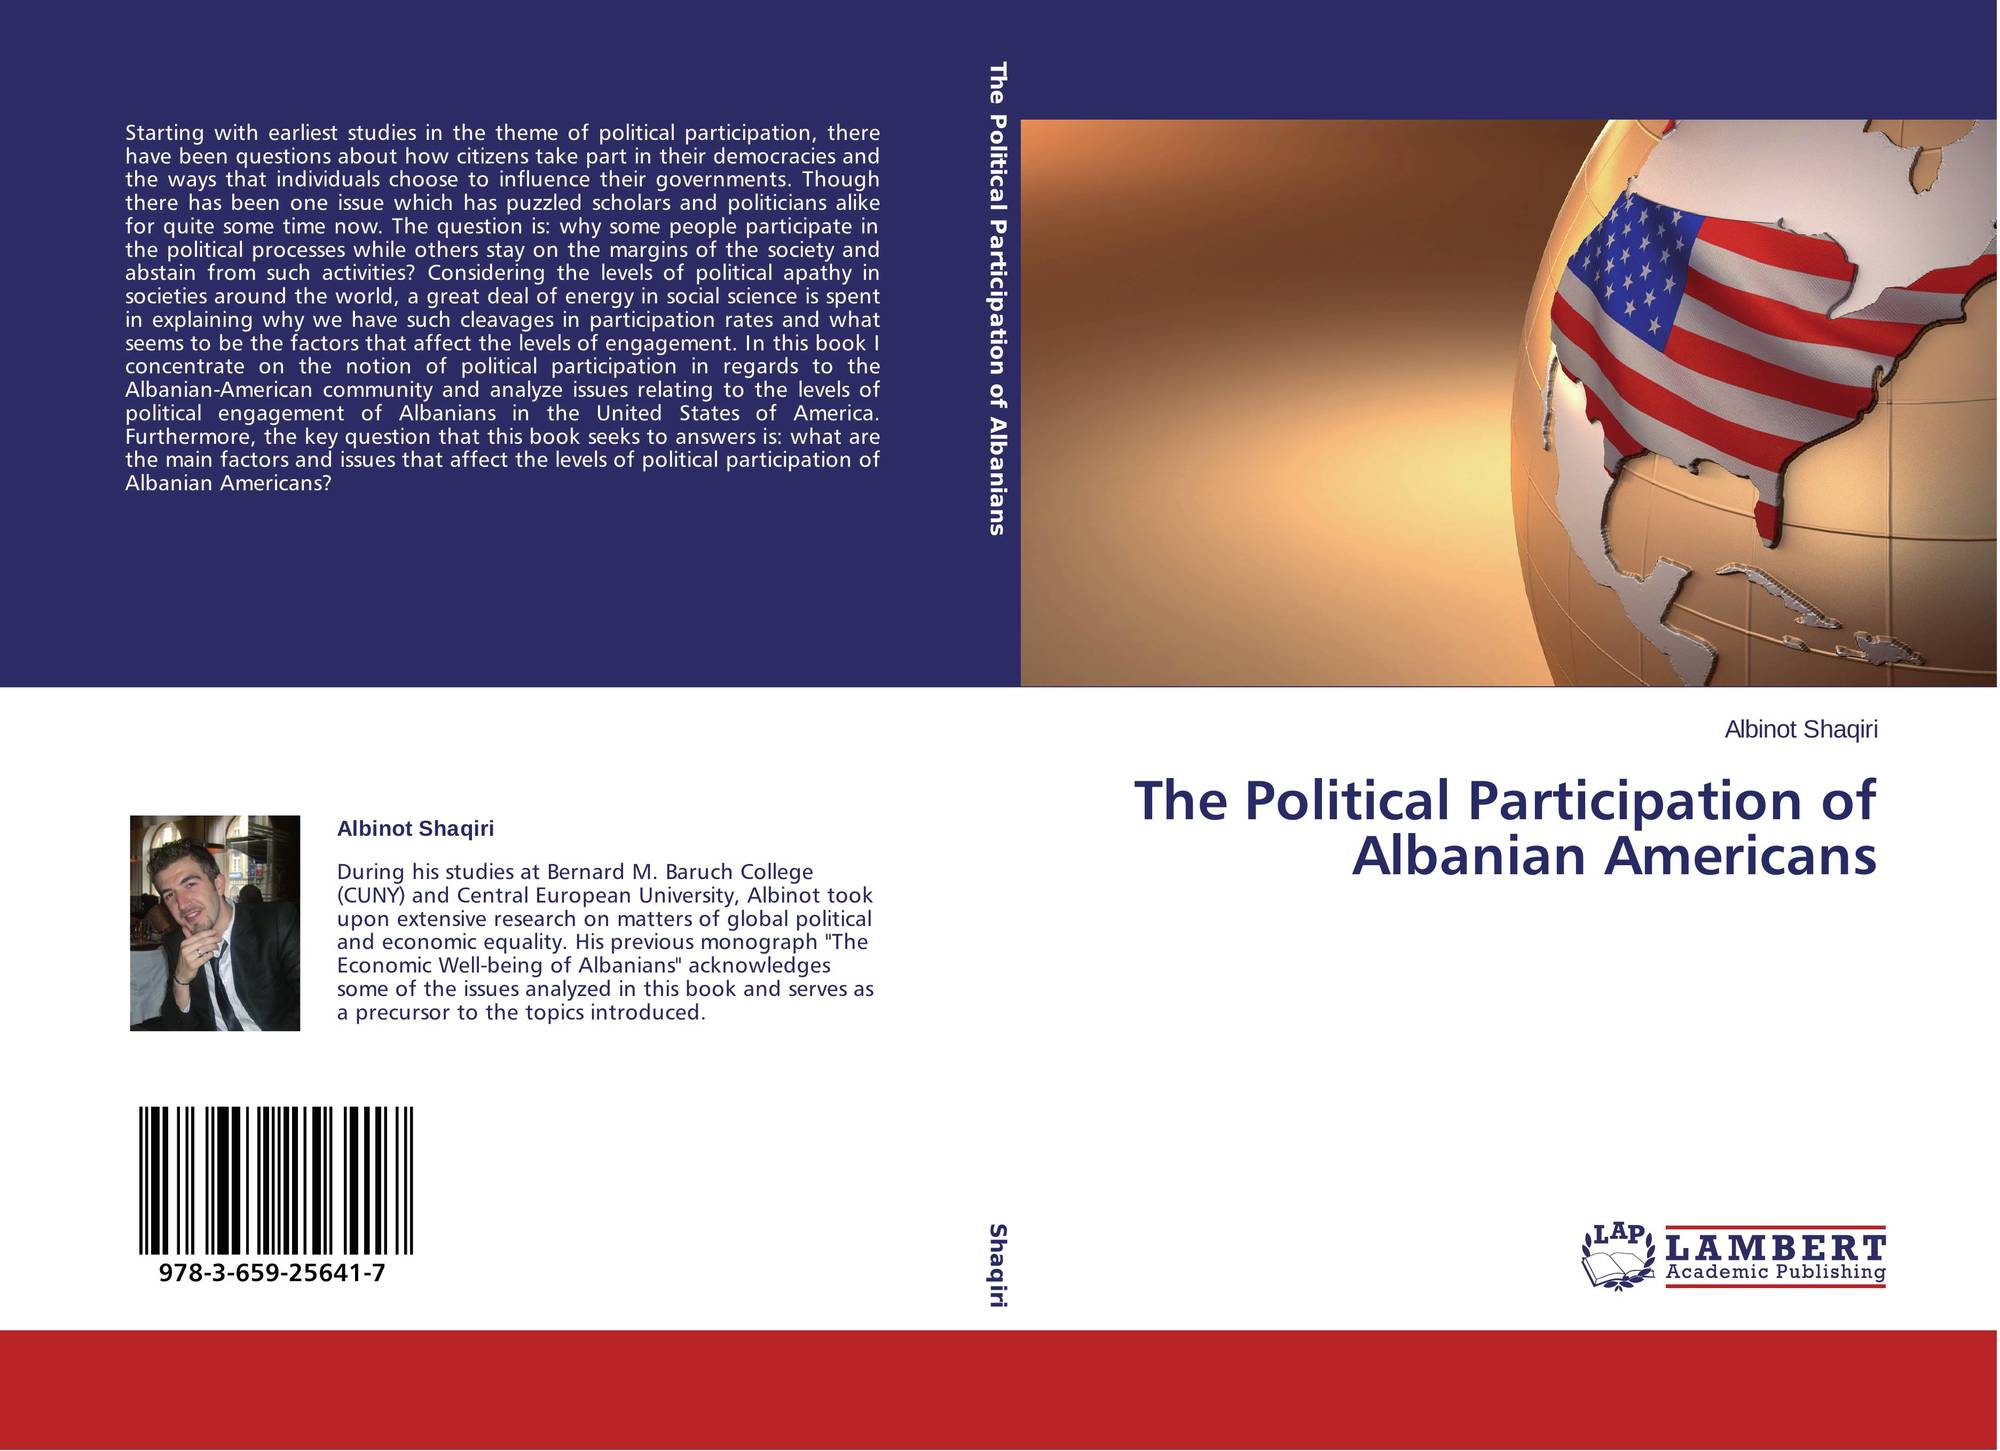 the issue of declining political participation in america Political participation autor: yukiluk • december 6, 2013 • essay • 325 words (2 pages) • 641 views the decline in electoral turnout is perhaps the most obvious reason why there seems to be a crisis of democracy in the issue of democratization and habitual political culture in iraq after 2003.